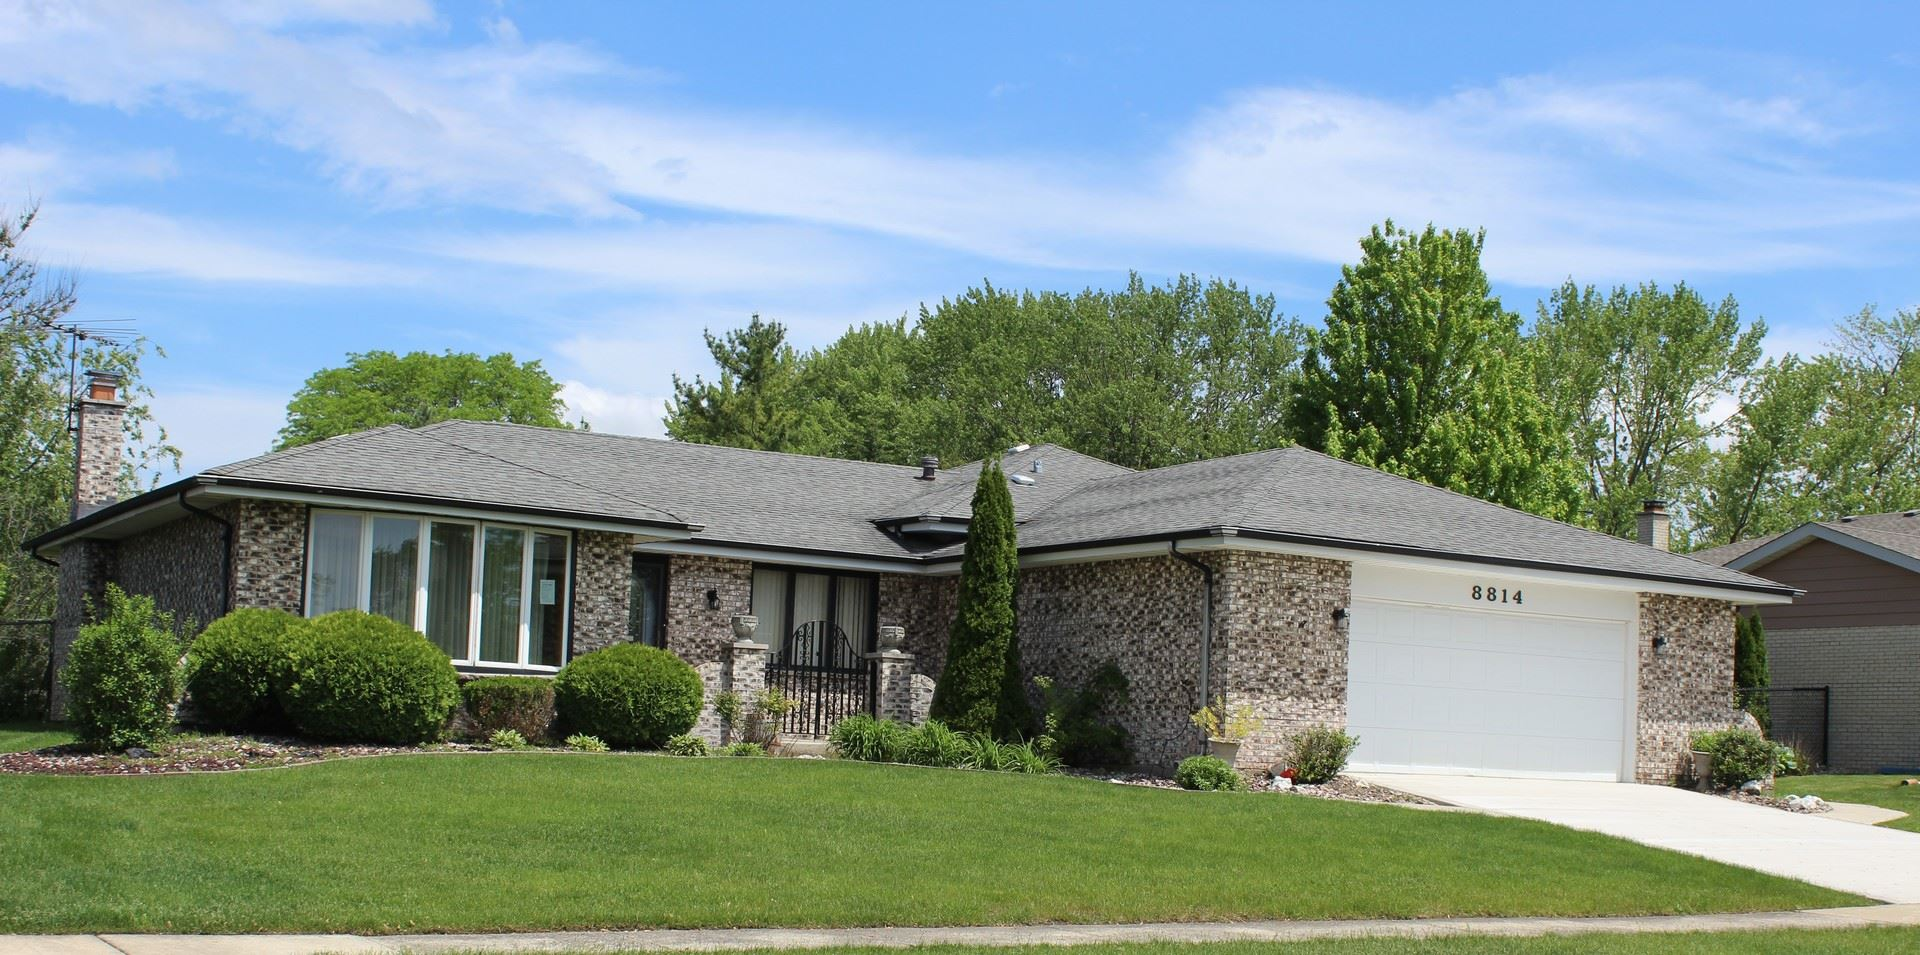 8814 Butterfield Lane, Orland Park, IL 60462 - #: 10717095